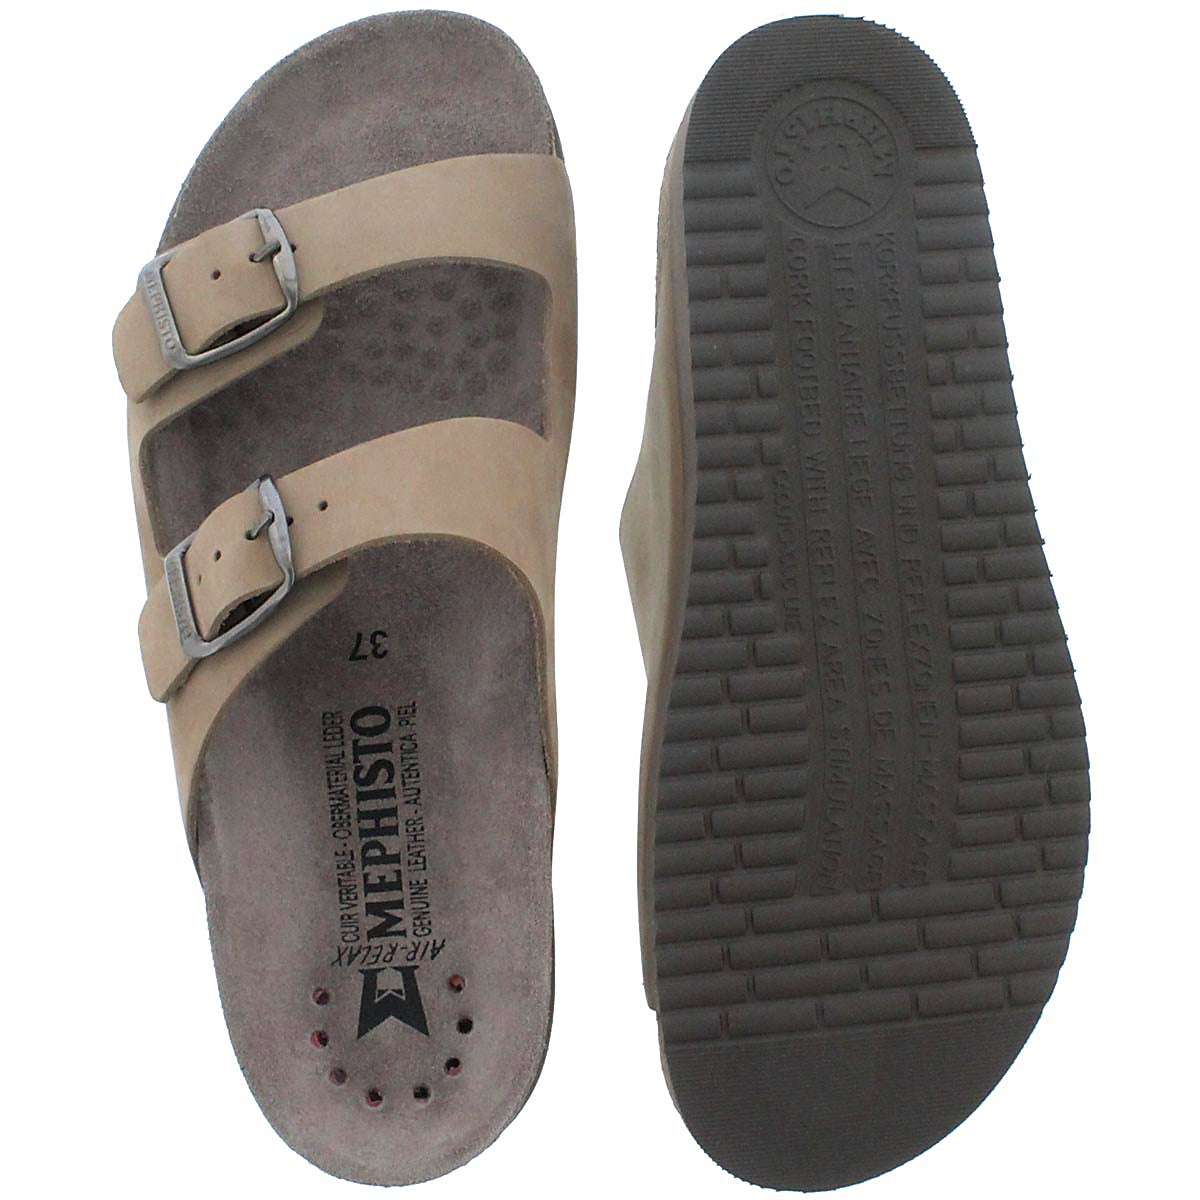 Lds Harmony beige cork footbed slide